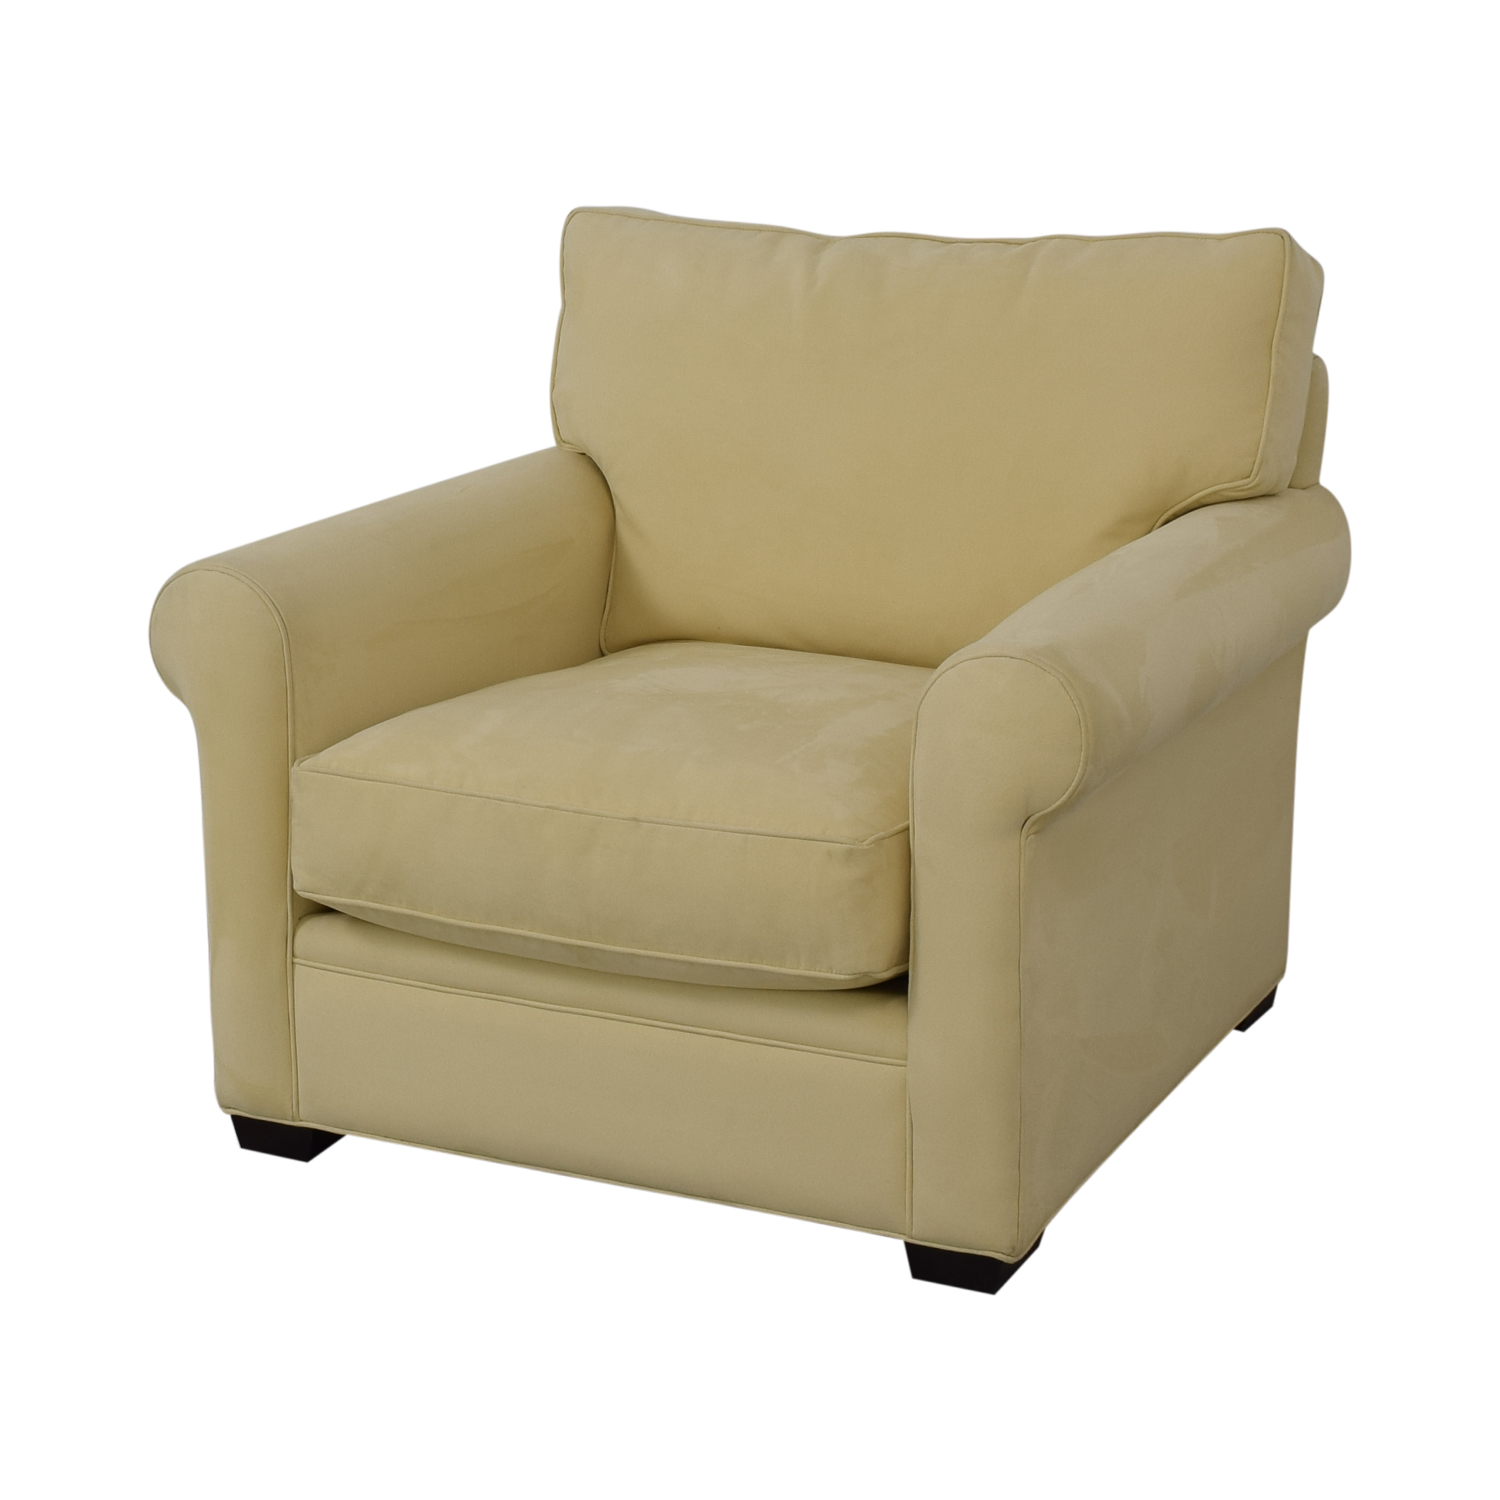 Crate & Barrel Yellow Oversized Accent Chair / Chairs